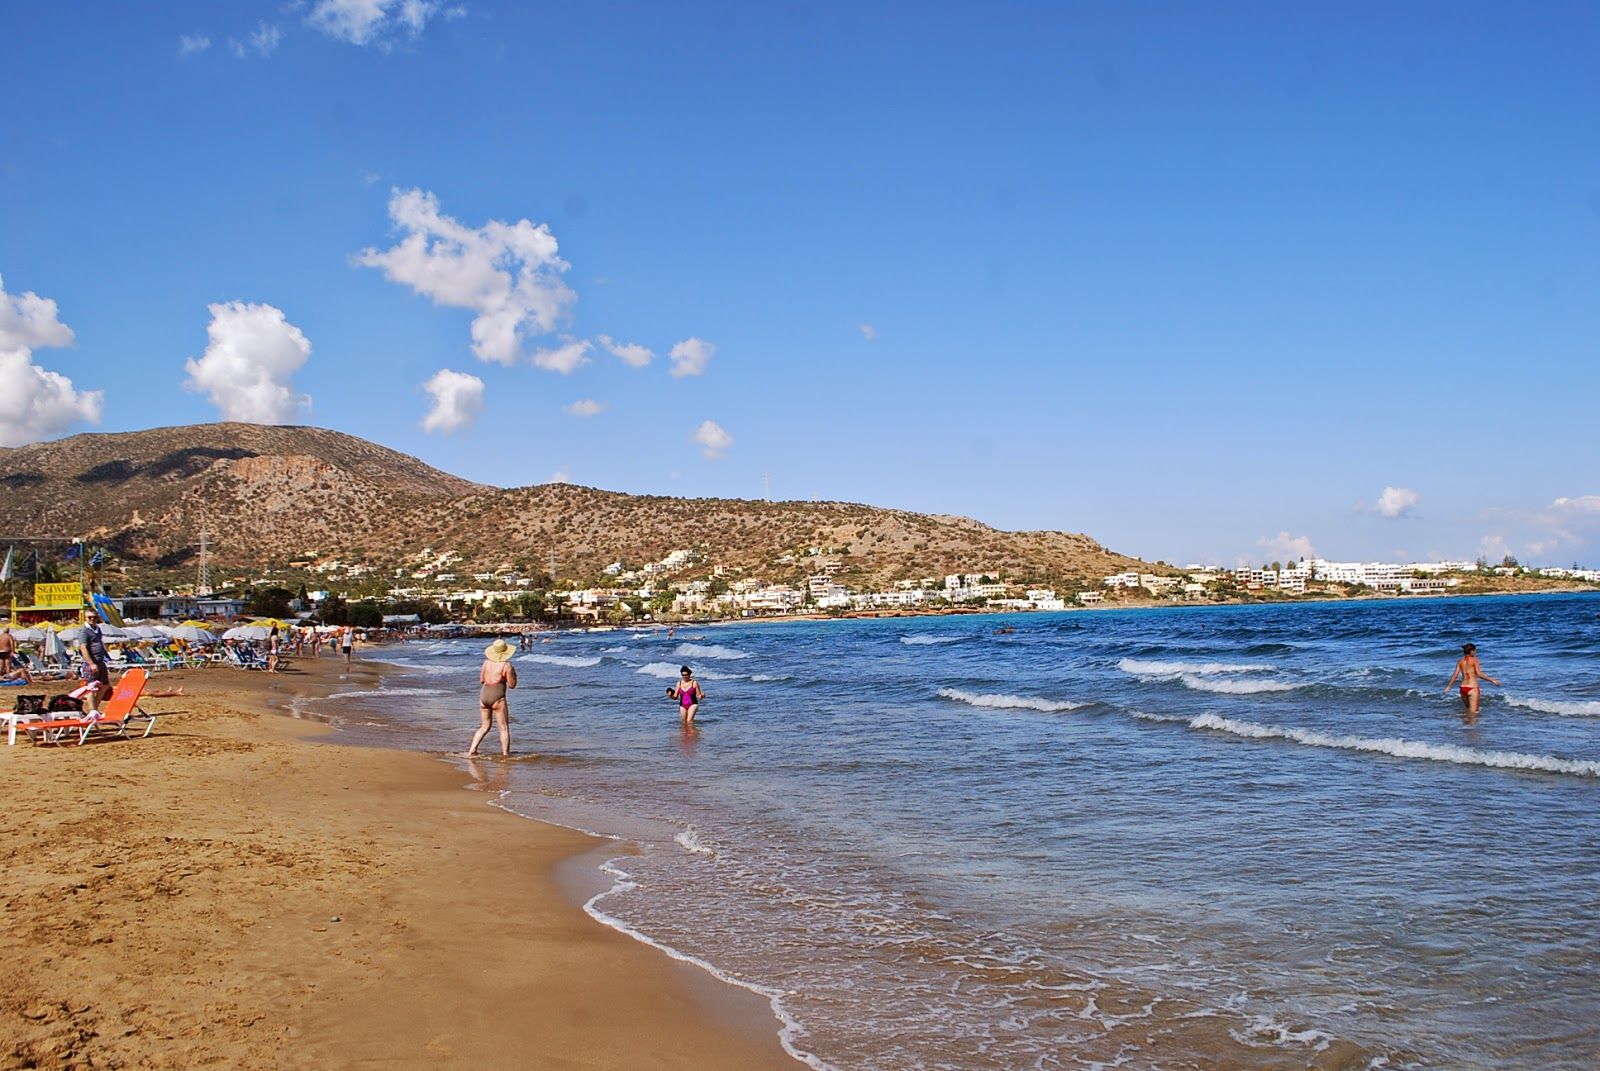 Пляж Сталиды, Крит, Греция. Beach of Stalis, Crete, Greece.